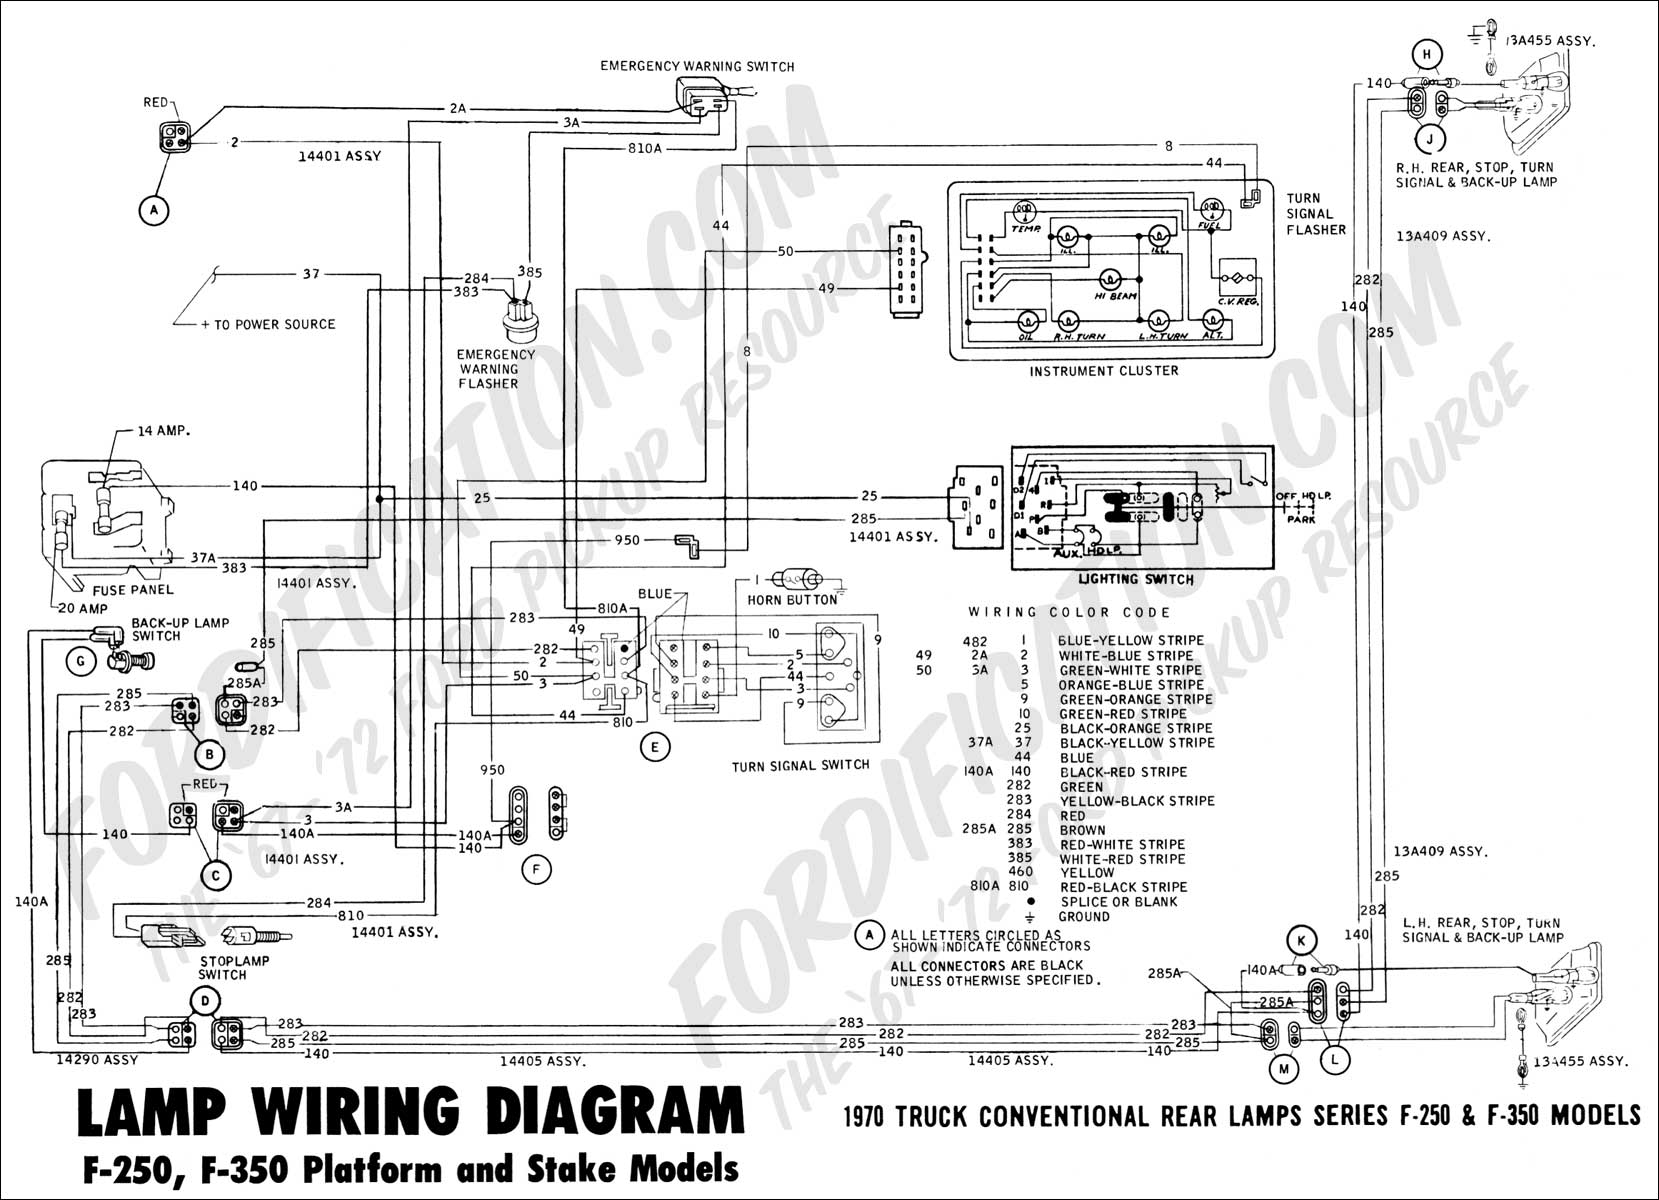 hight resolution of 2005 ford f350 wiring harness diagrams wiring diagram 2005 ford f350 trailer wiring harness 2005 f350 wiring harness